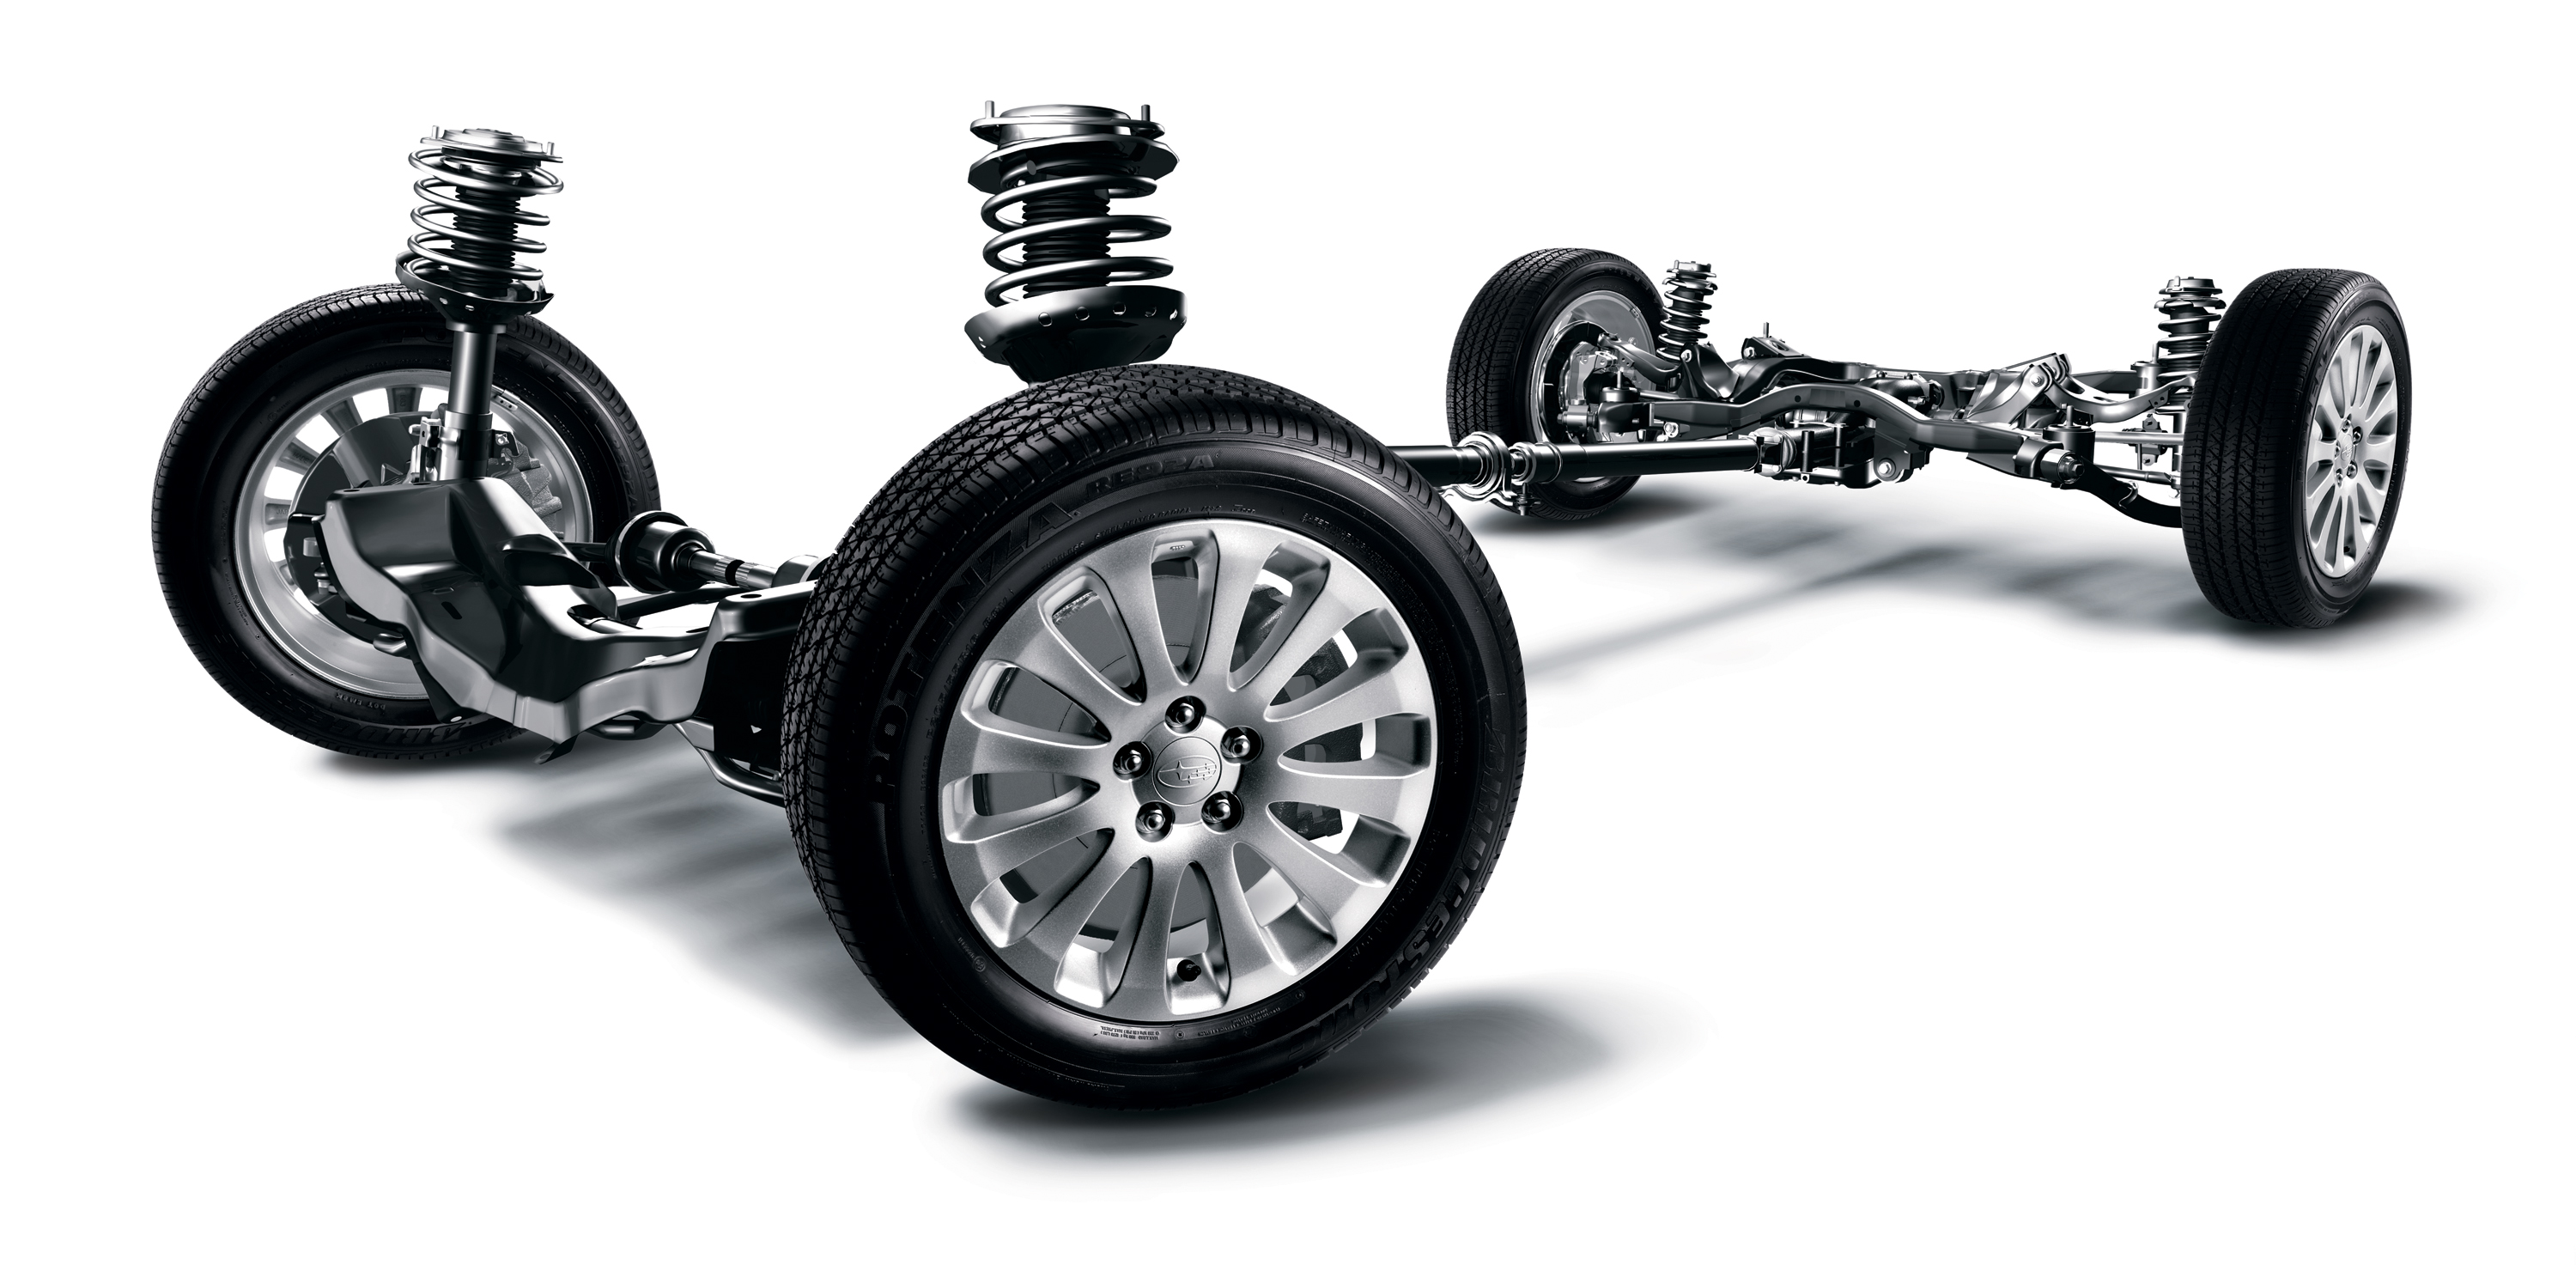 Suspension Stx Air Custom Series With Suspension Rhx Features With